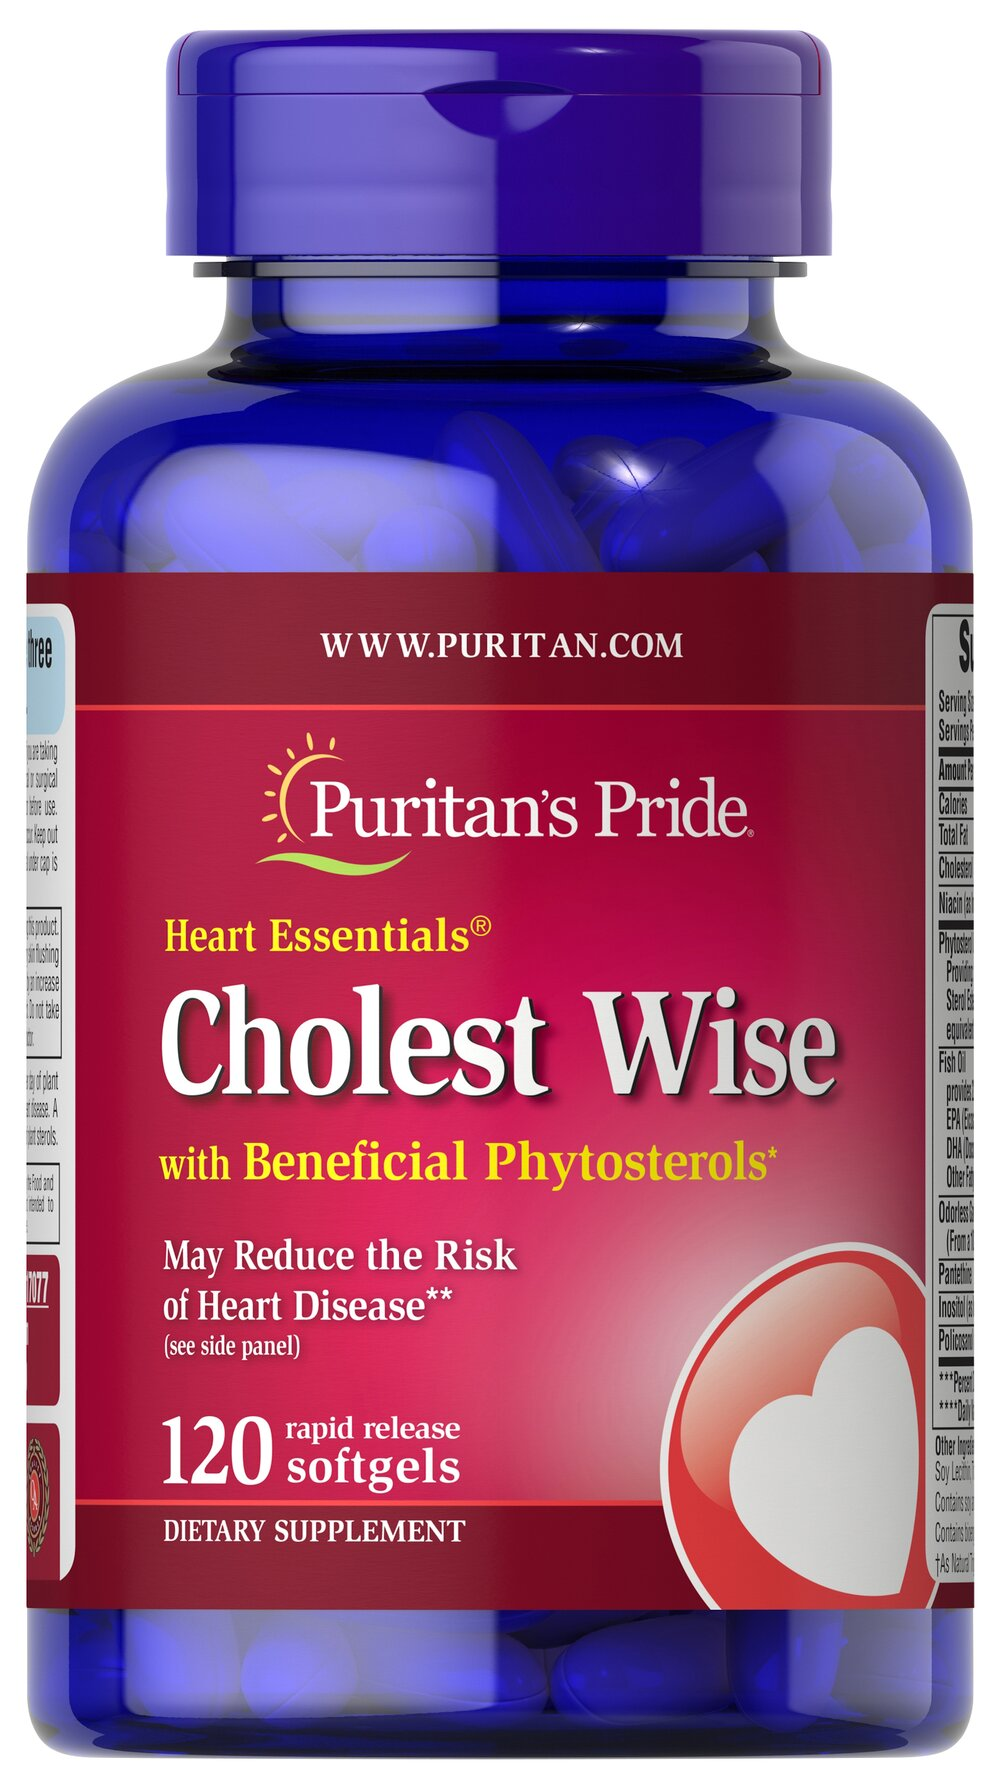 Heart Essentials™ Cholest Wise with Plant Sterols <p>Cholest Wise is an innovative supplement that also works to promote cardiovascular and circulatory wellness.**</p><p>Contains several beneficial ingredients: Flush Free Niacin, Garlic, Fish Oil with Omega-3 Fatty Acids, Policosanol, Plant Sterols, and Pantethine.</p><p>May reduce the risk of heart disease.†</p><p>†Diets low in saturated fat and cholesterol that include 2 g per day of plant sterols eate